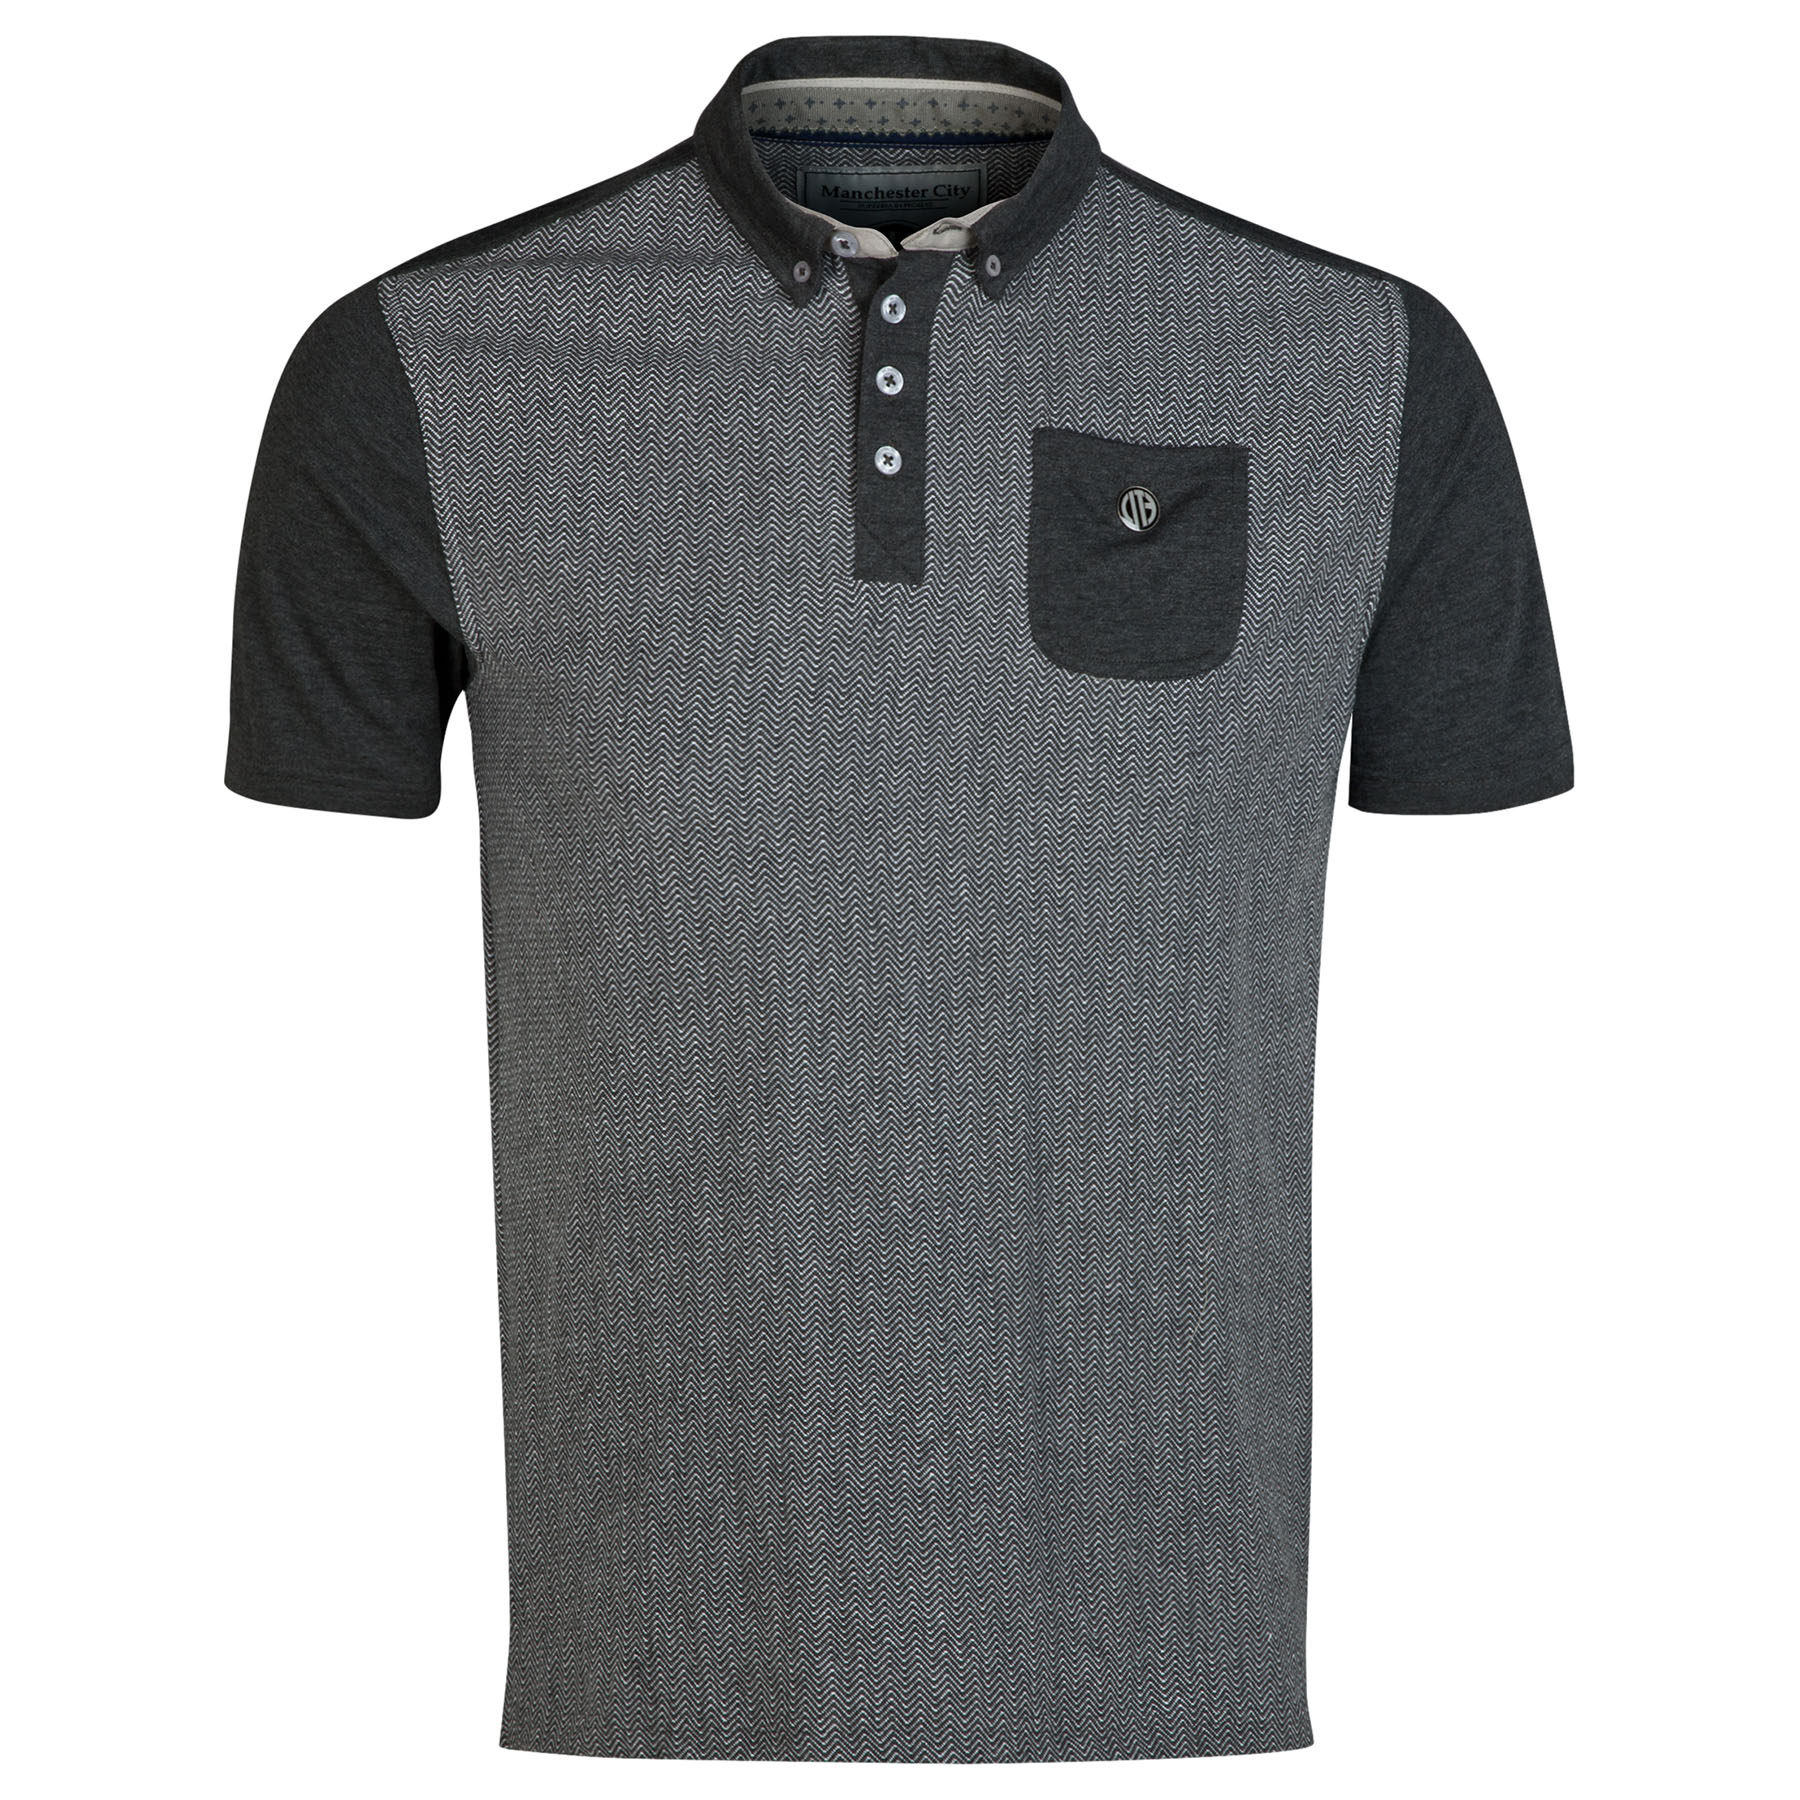 Manchester City Polo Shirt - Charcoal - Mens